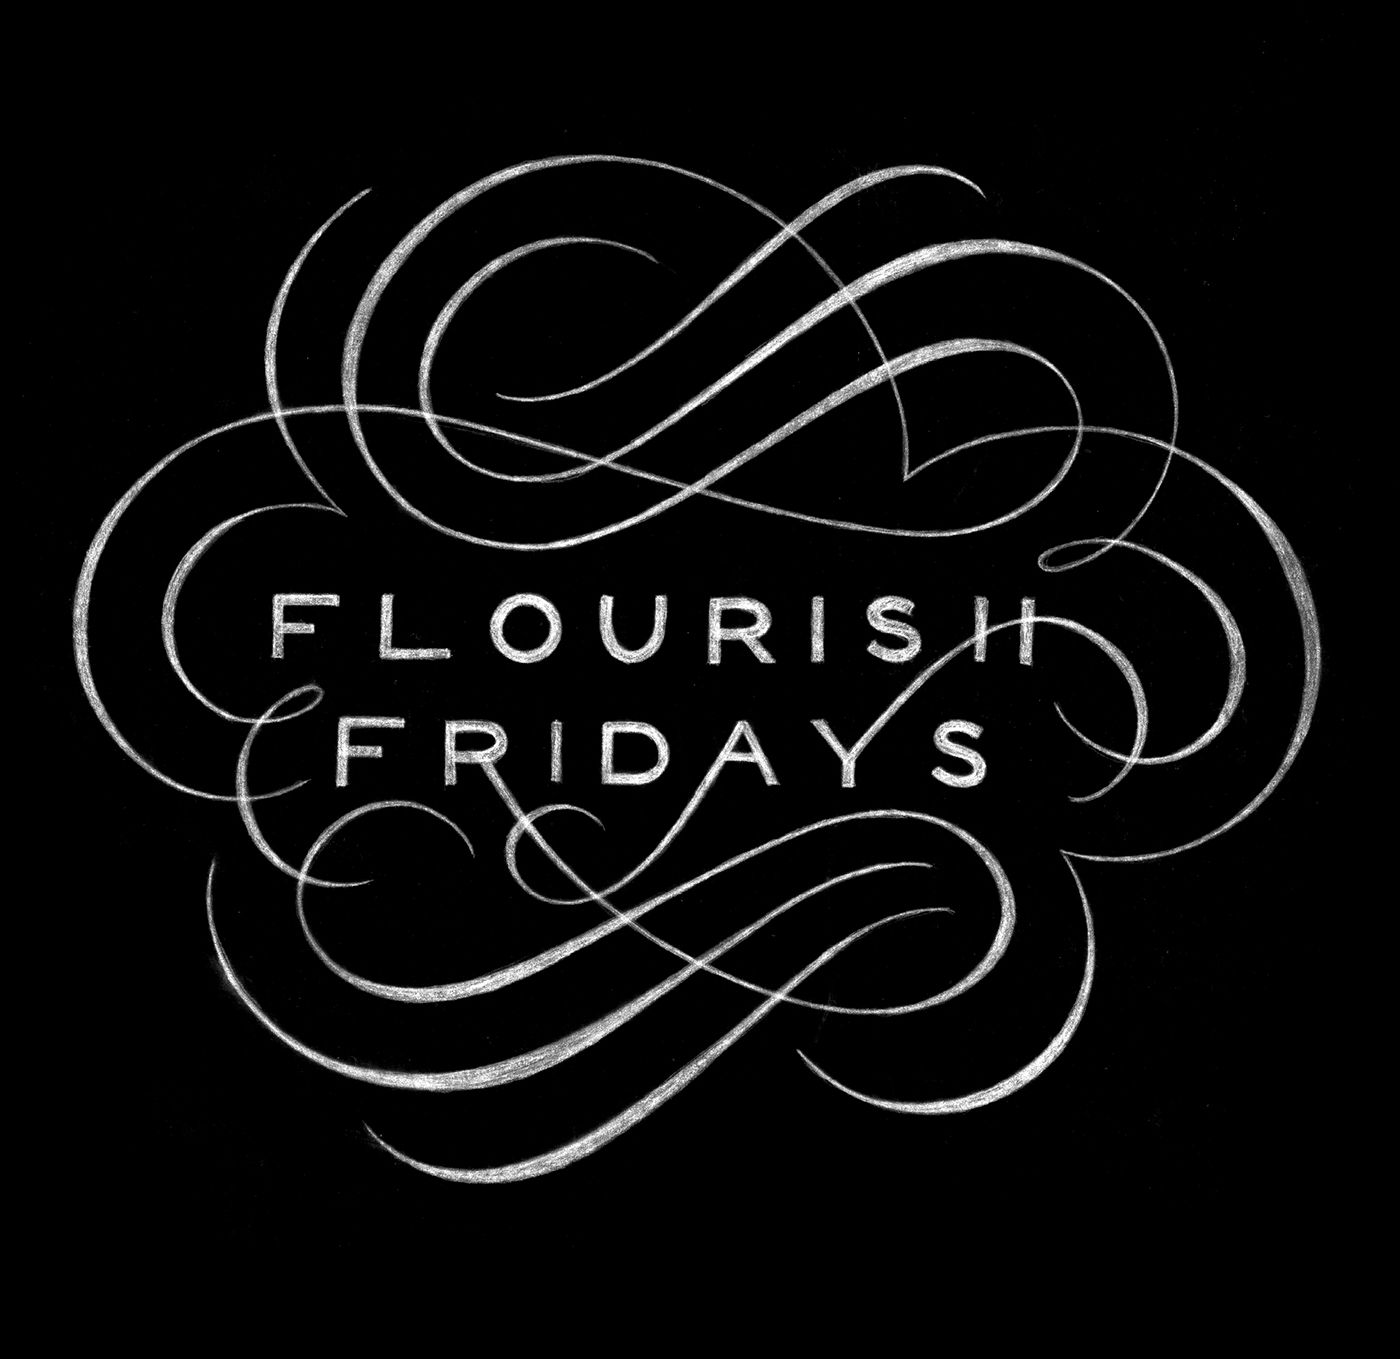 Flourish Fridays on Behance